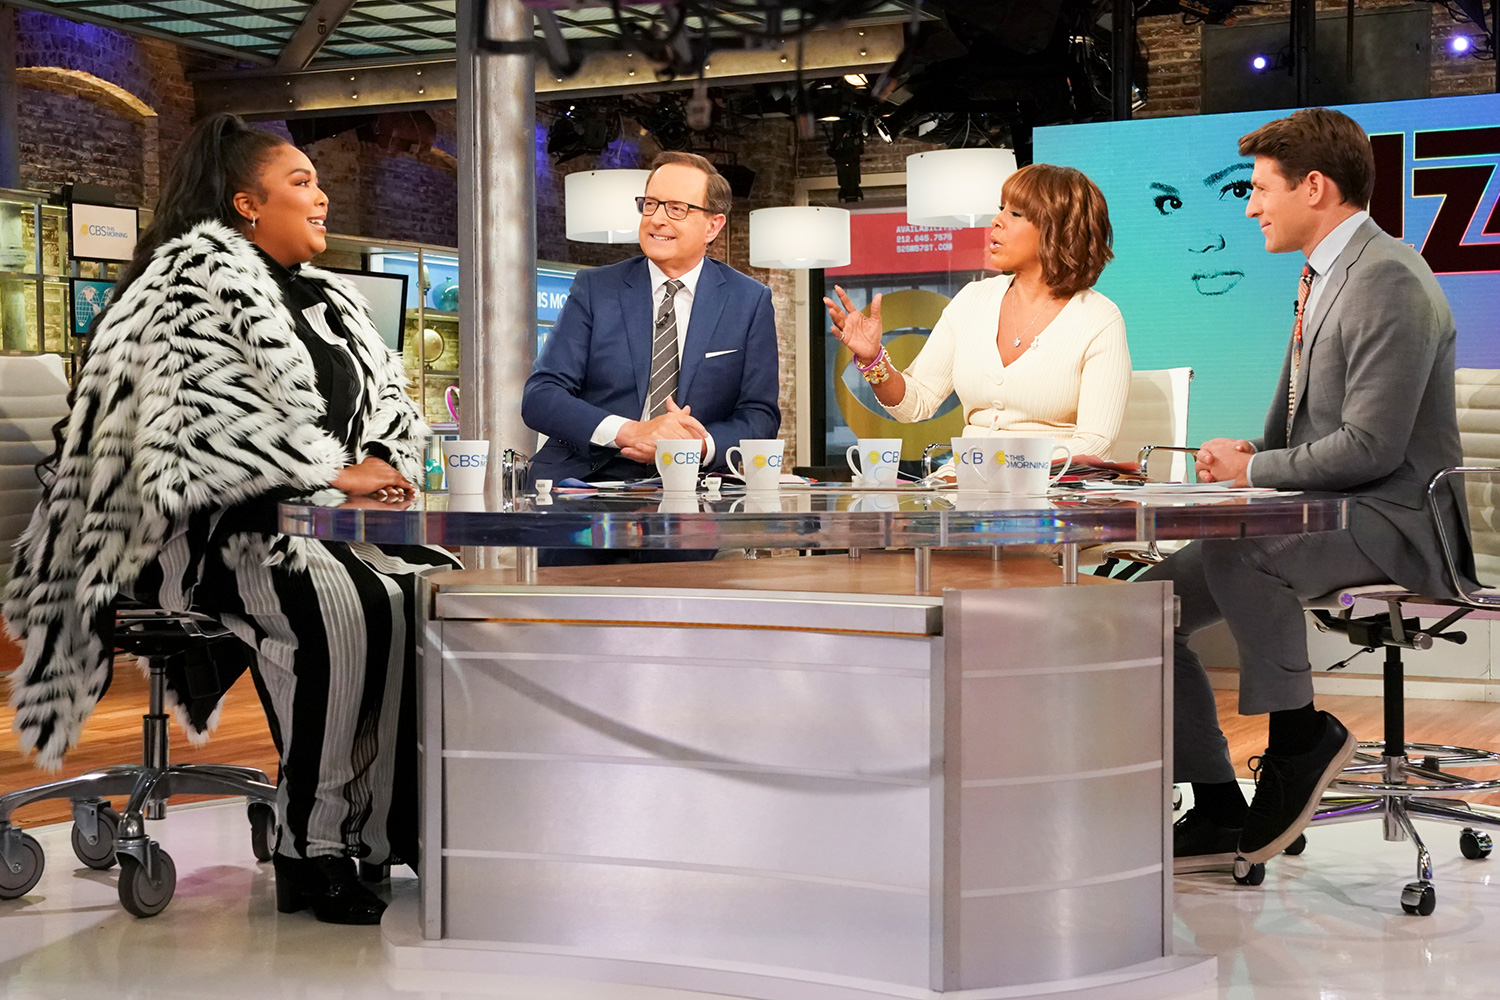 CBS This Morning Co-Anchors Gayle King, Anthony Mason and Tony Dokoupil interview 8 time Grammy Nominee Lizzo LIVE on December 12th, 2019